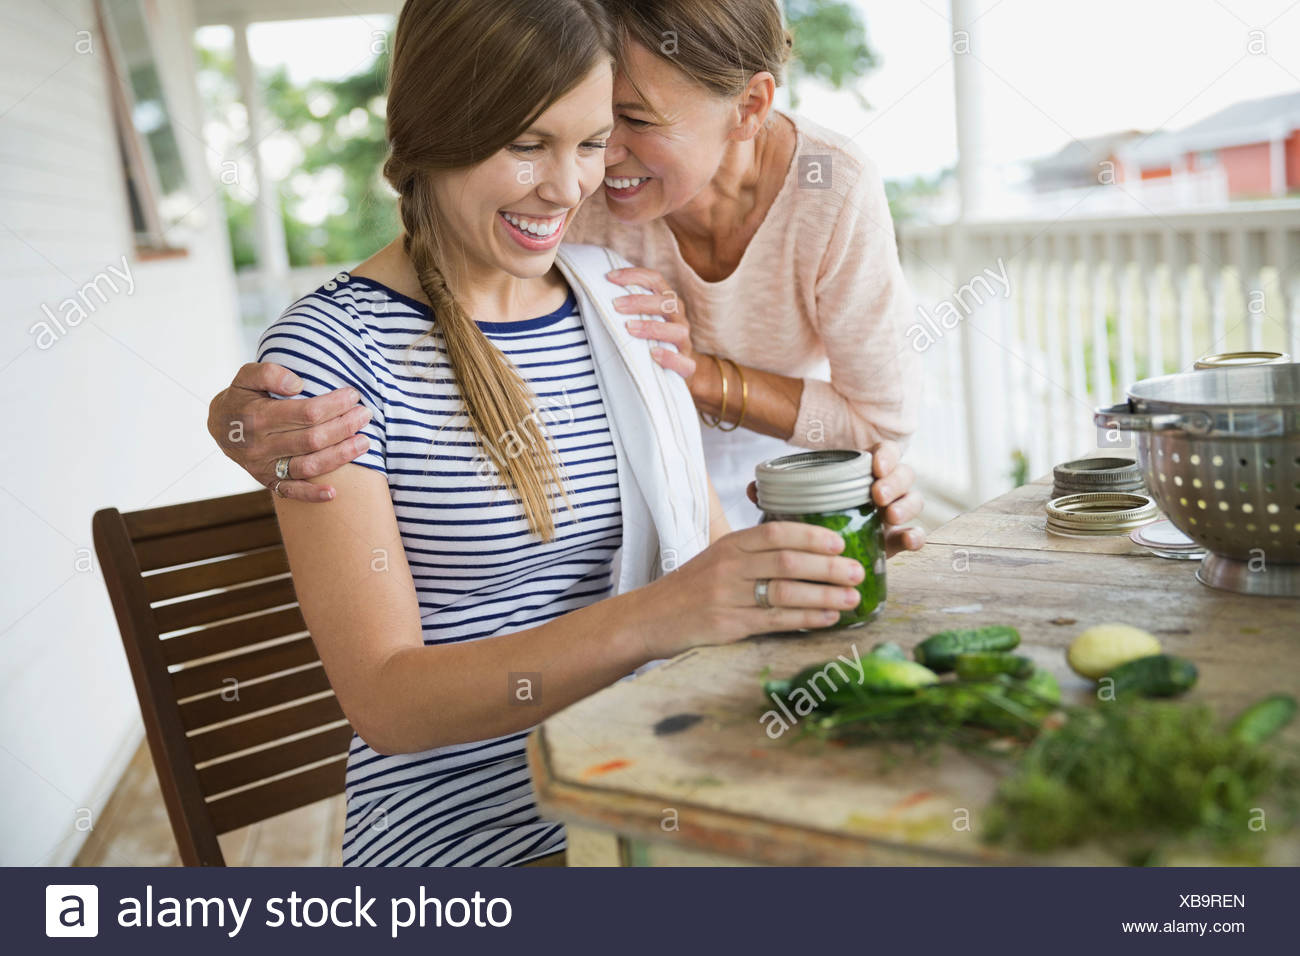 Affectionate mother and daughter canning vegetables - Stock Image